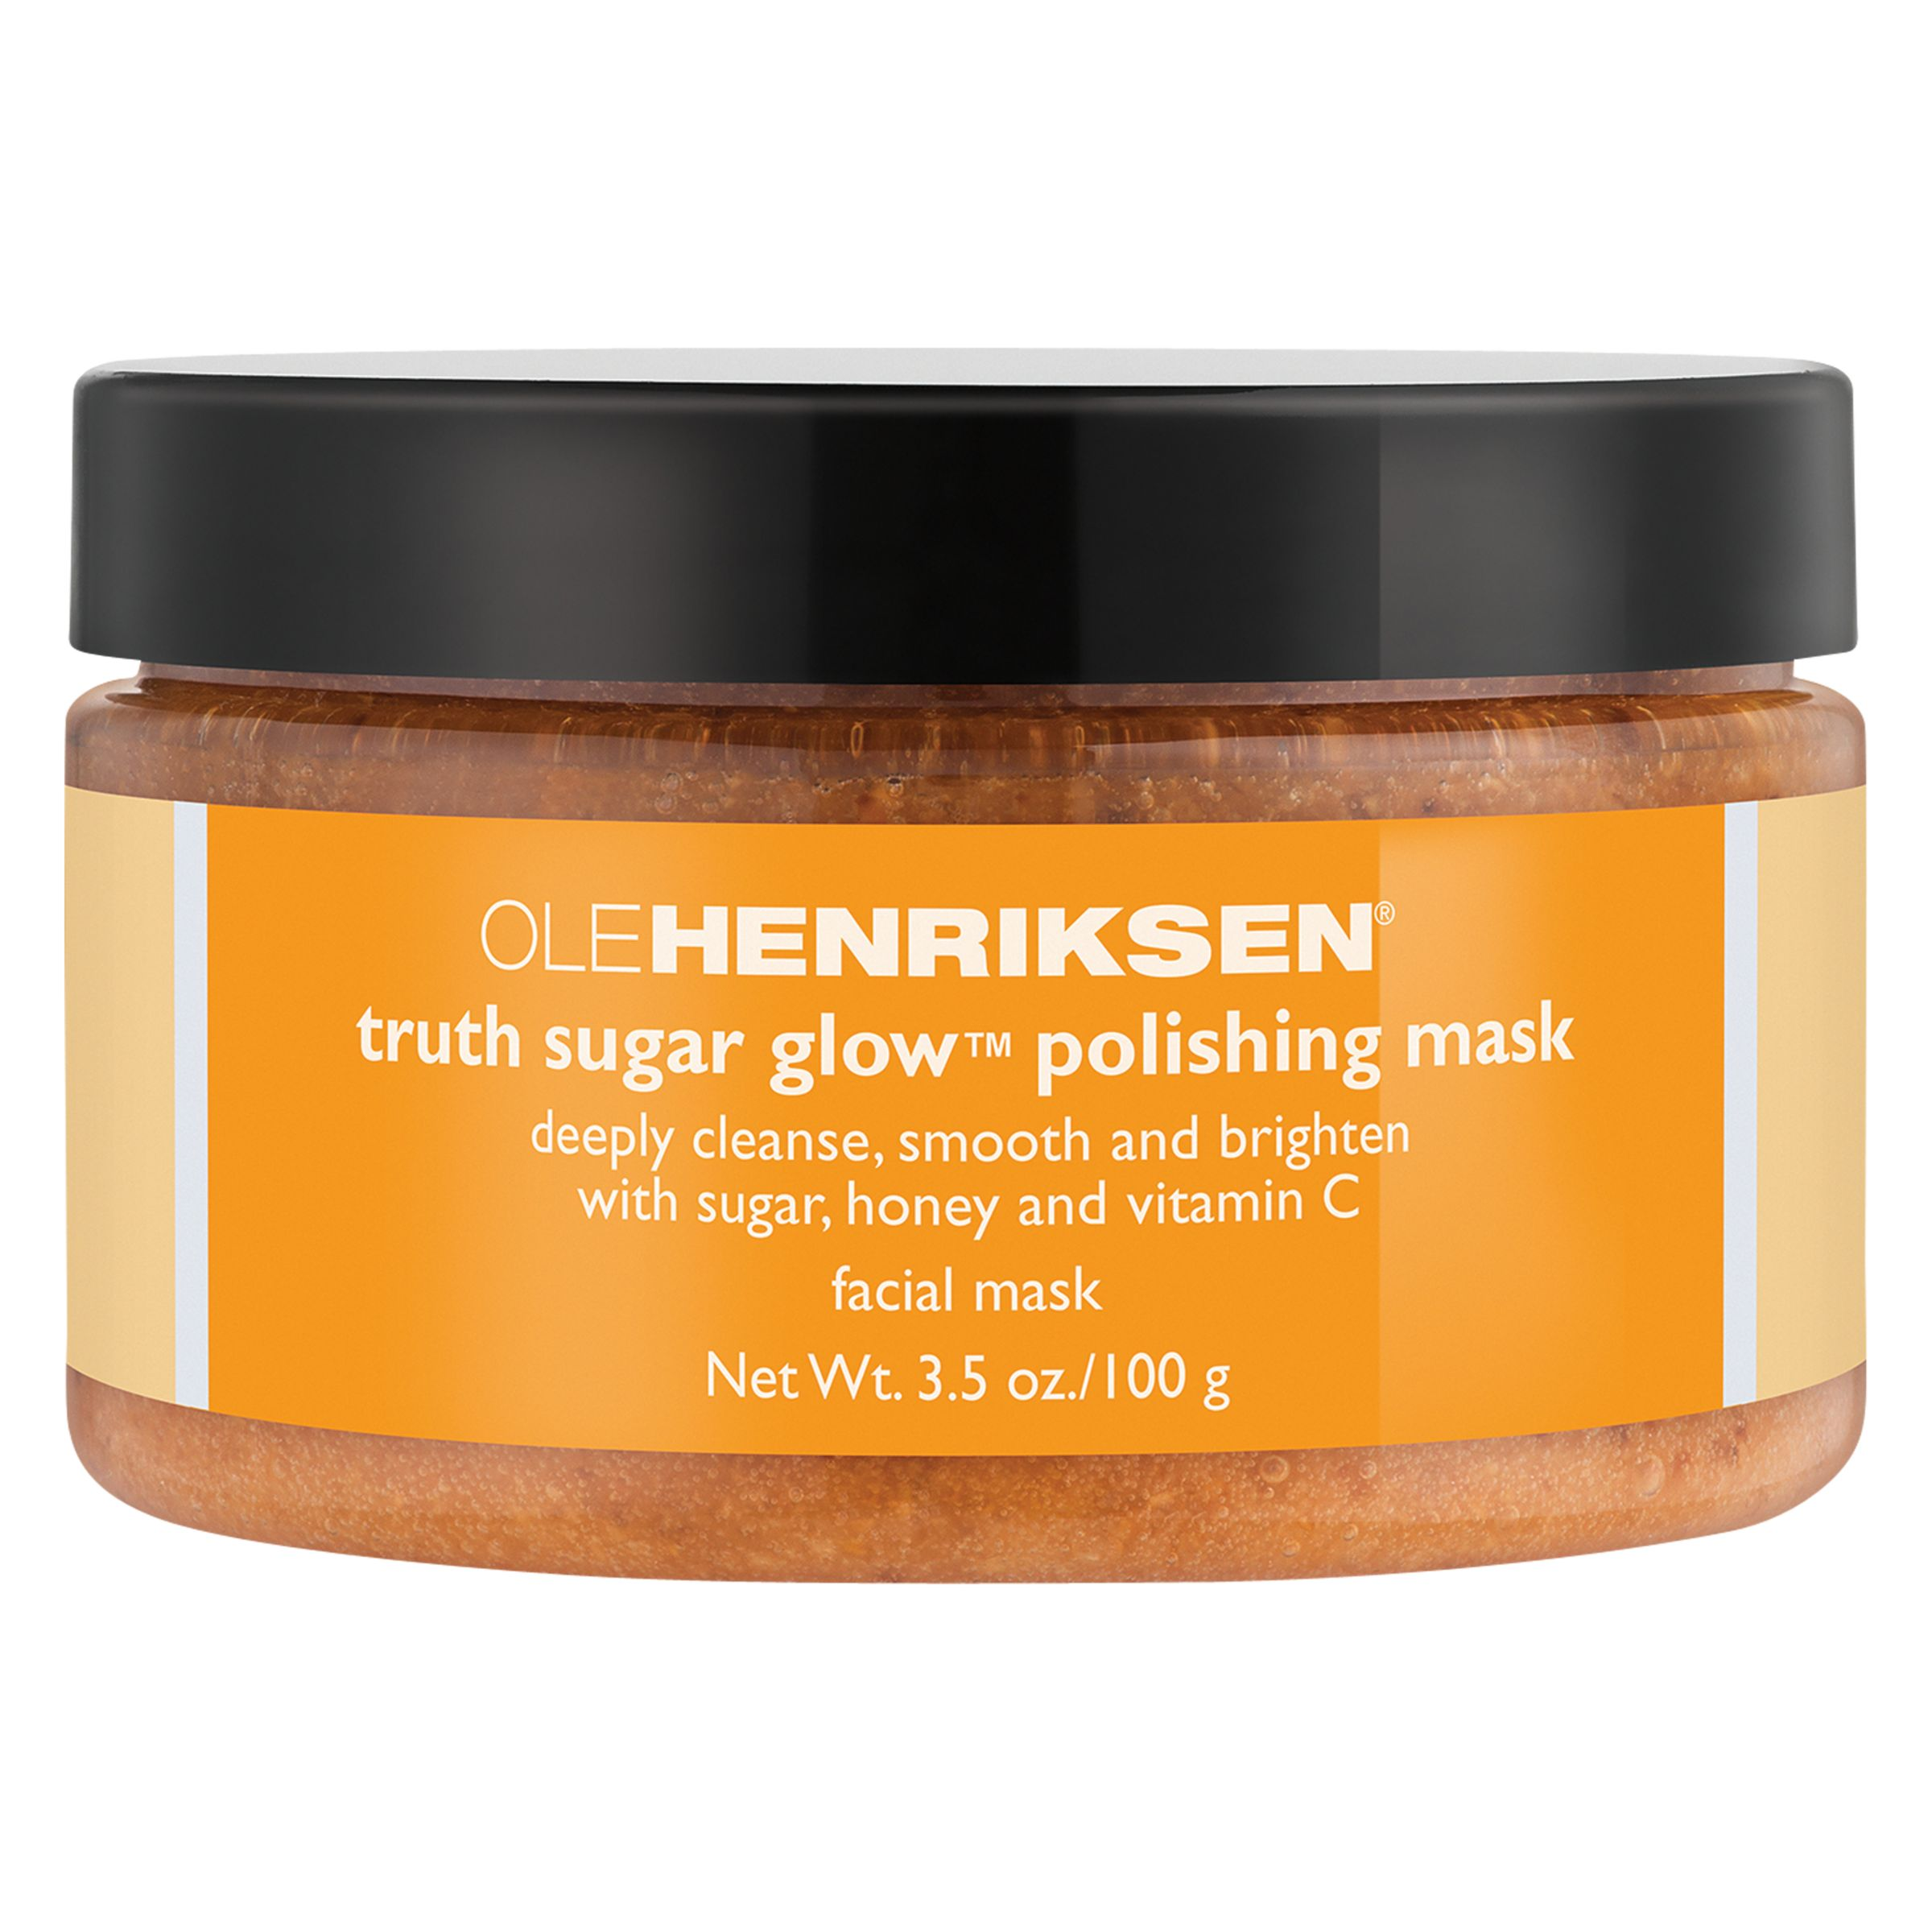 OLEHENRIKSEN OLEHENRIKSEN Truth Sugar Glow Polishing Mask, 100g